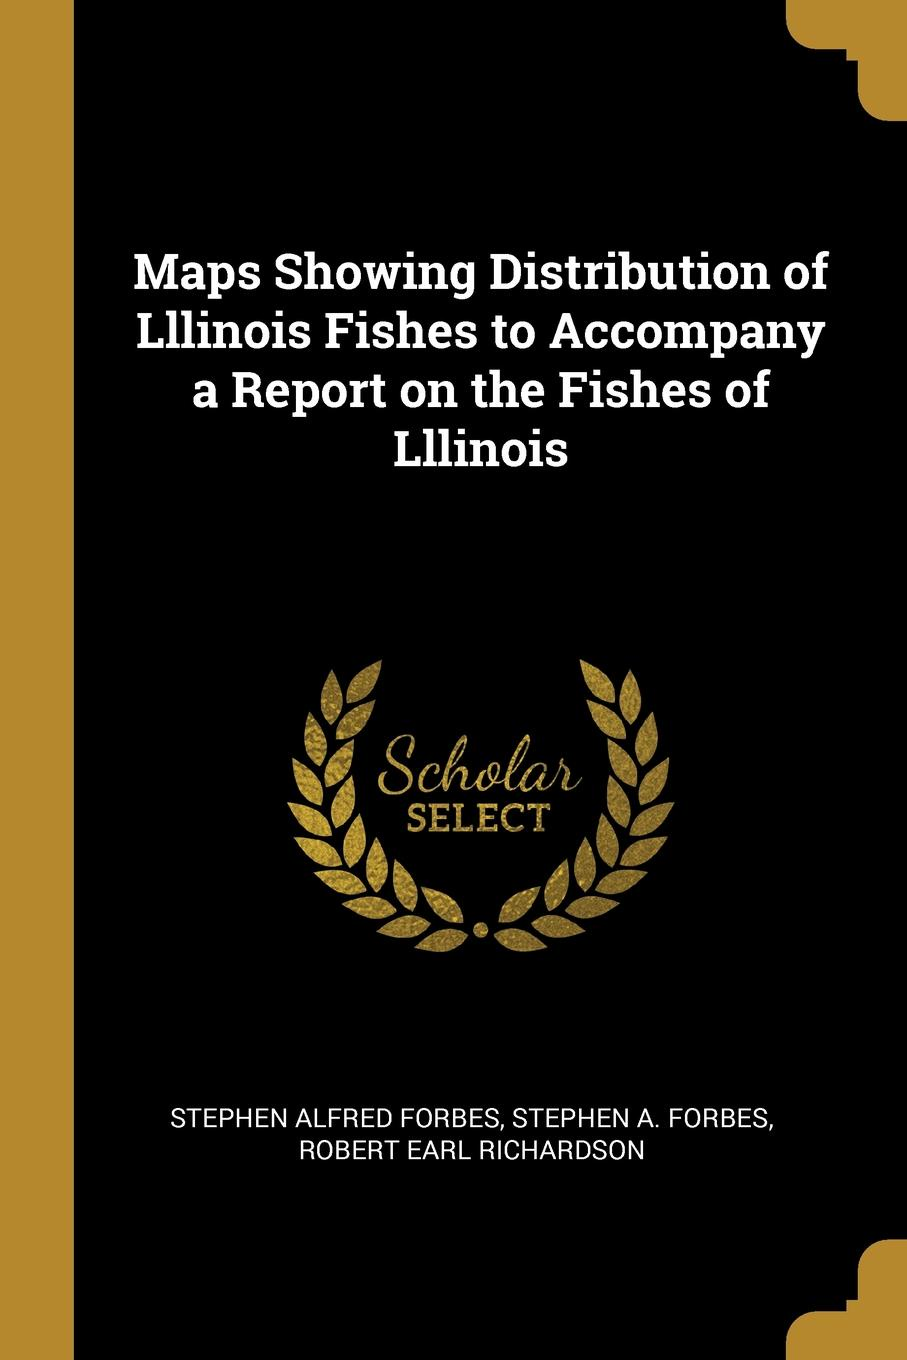 Stephen Alfred Forbes, A. Robert Earl Richardson Maps Showing Distribution of Lllinois Fishes to Accompany a Report on the